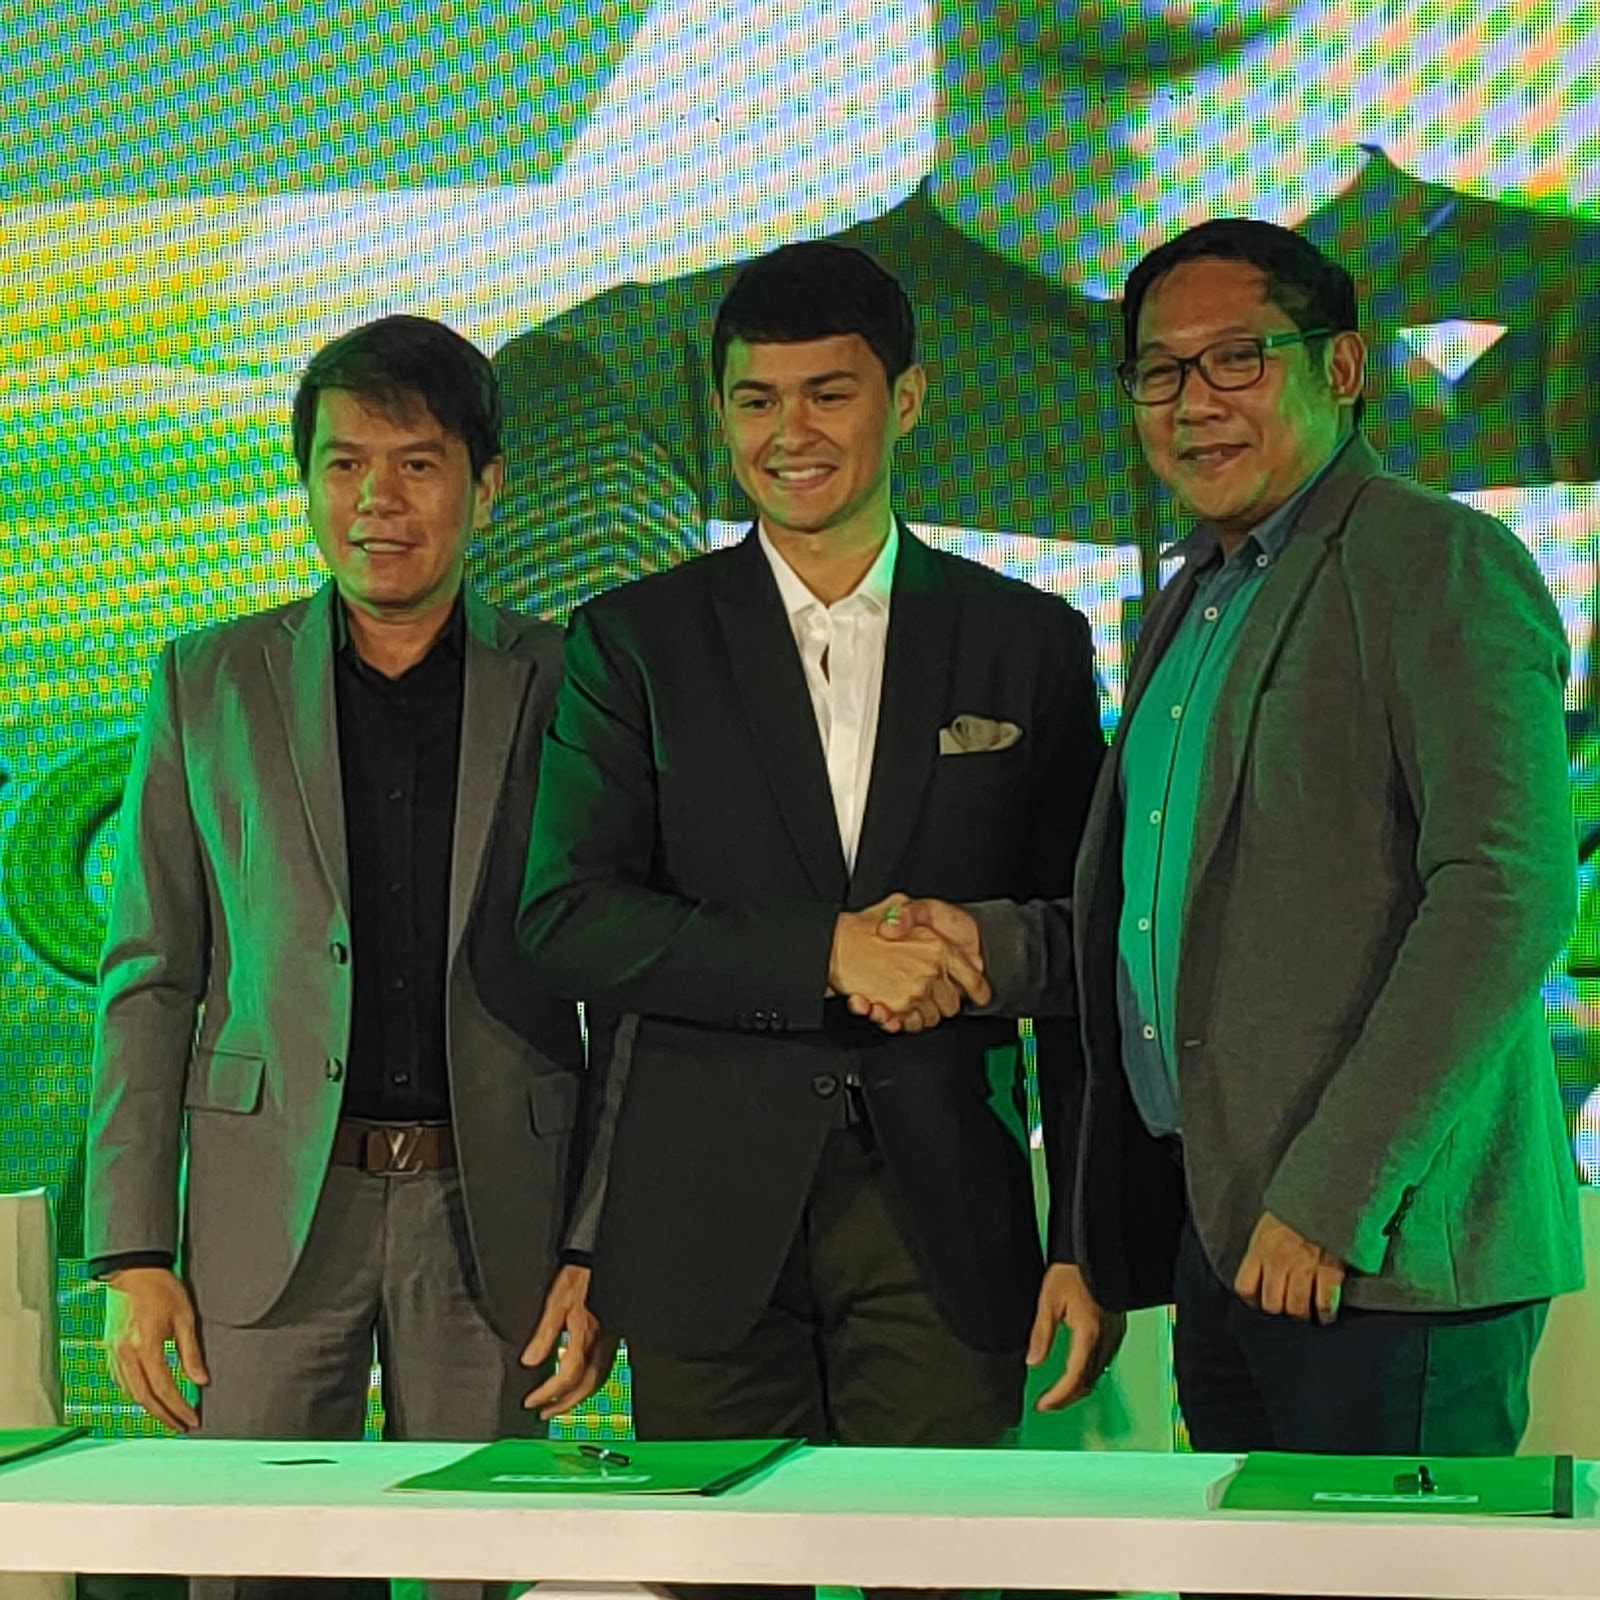 Matteo Guidicelli with Santé Barley's Bosses